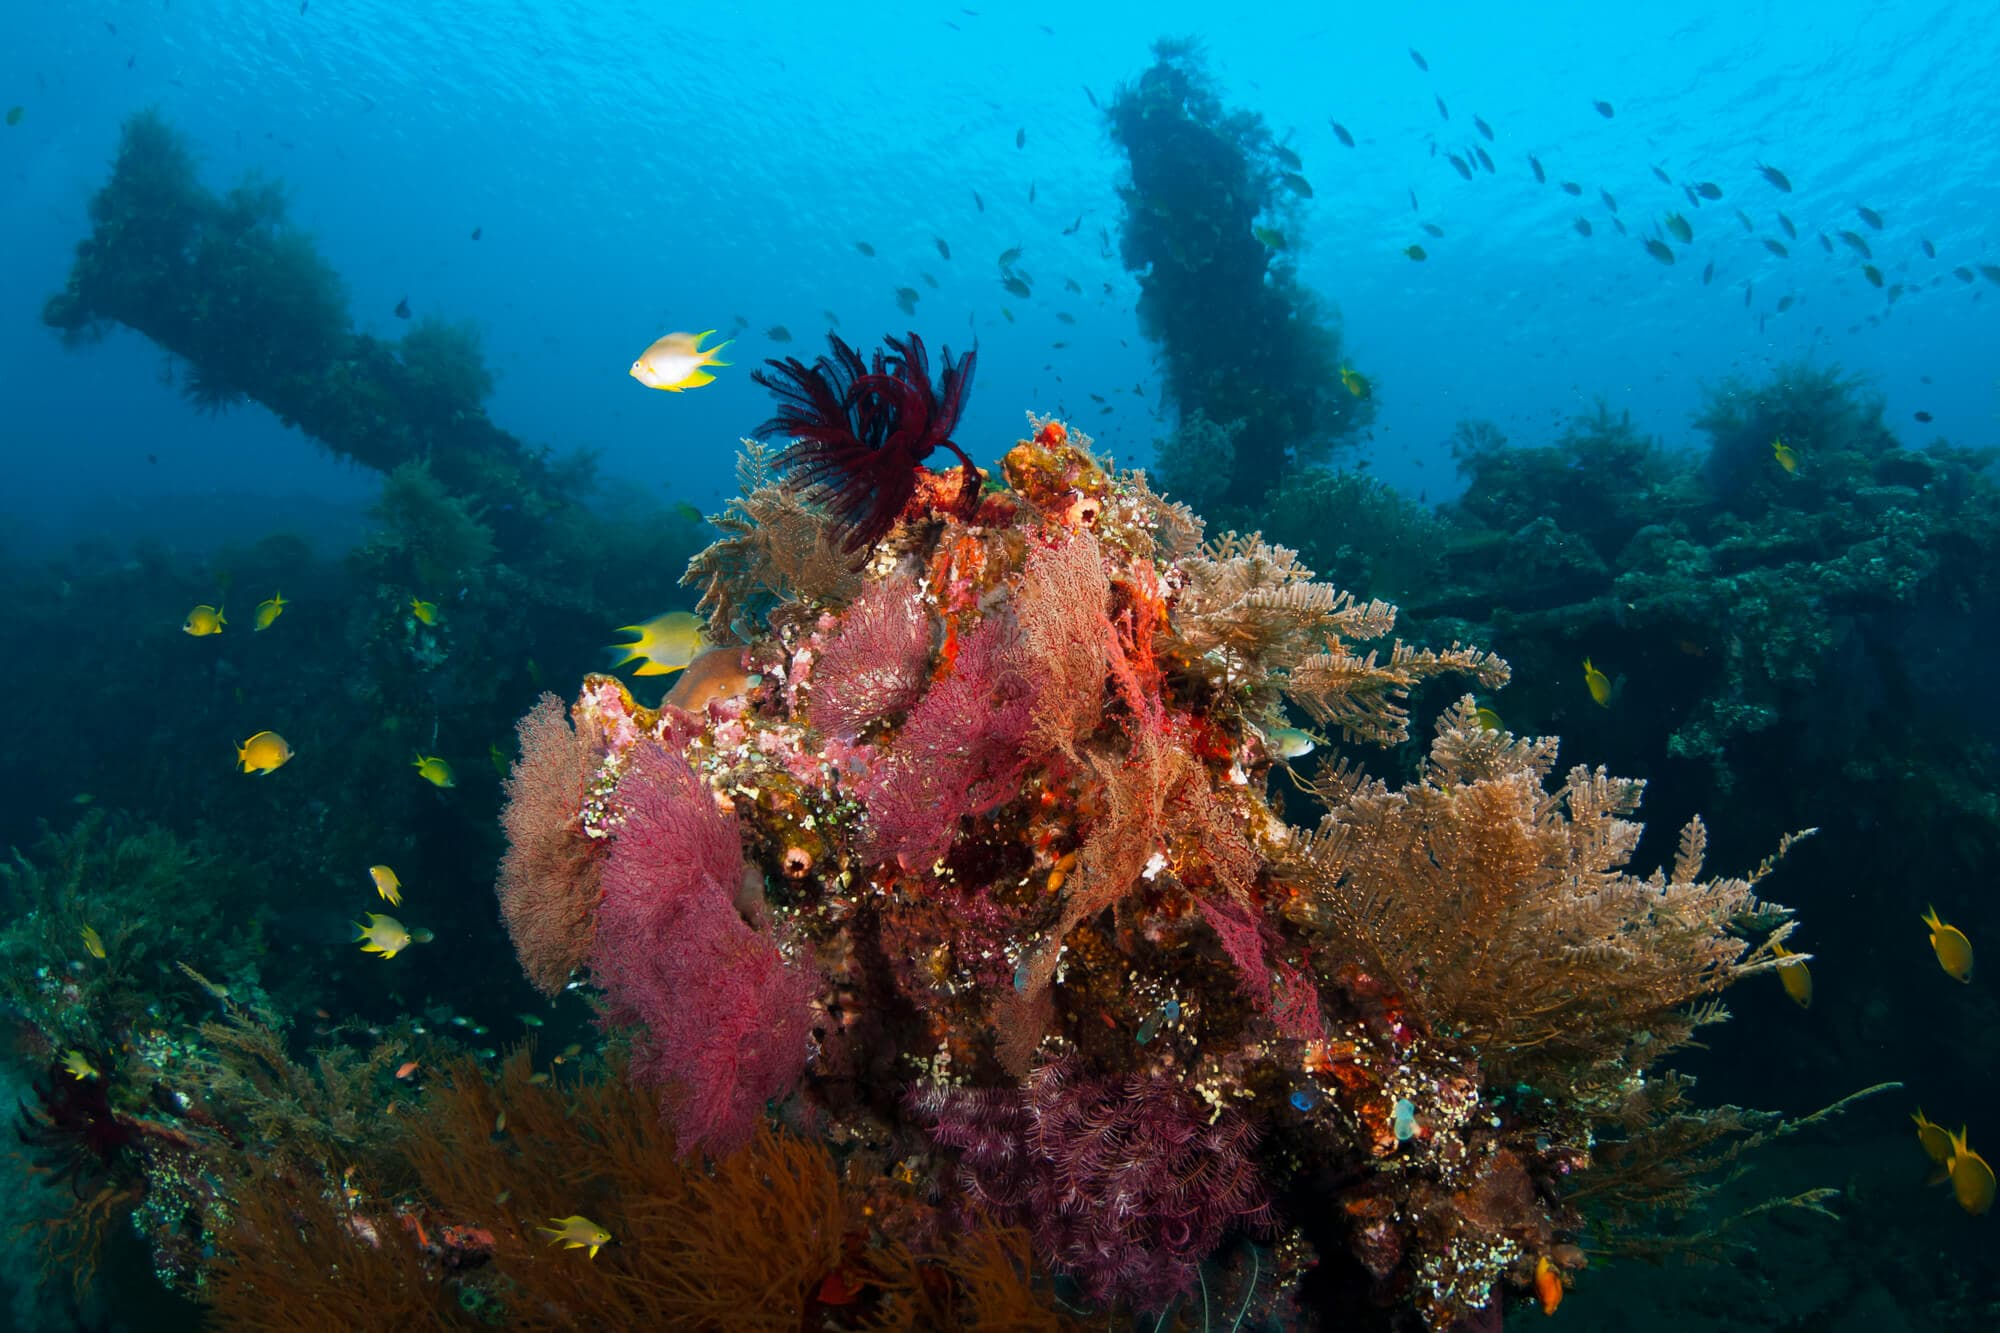 Go diving in Amed: One of the top things to do in East Bali